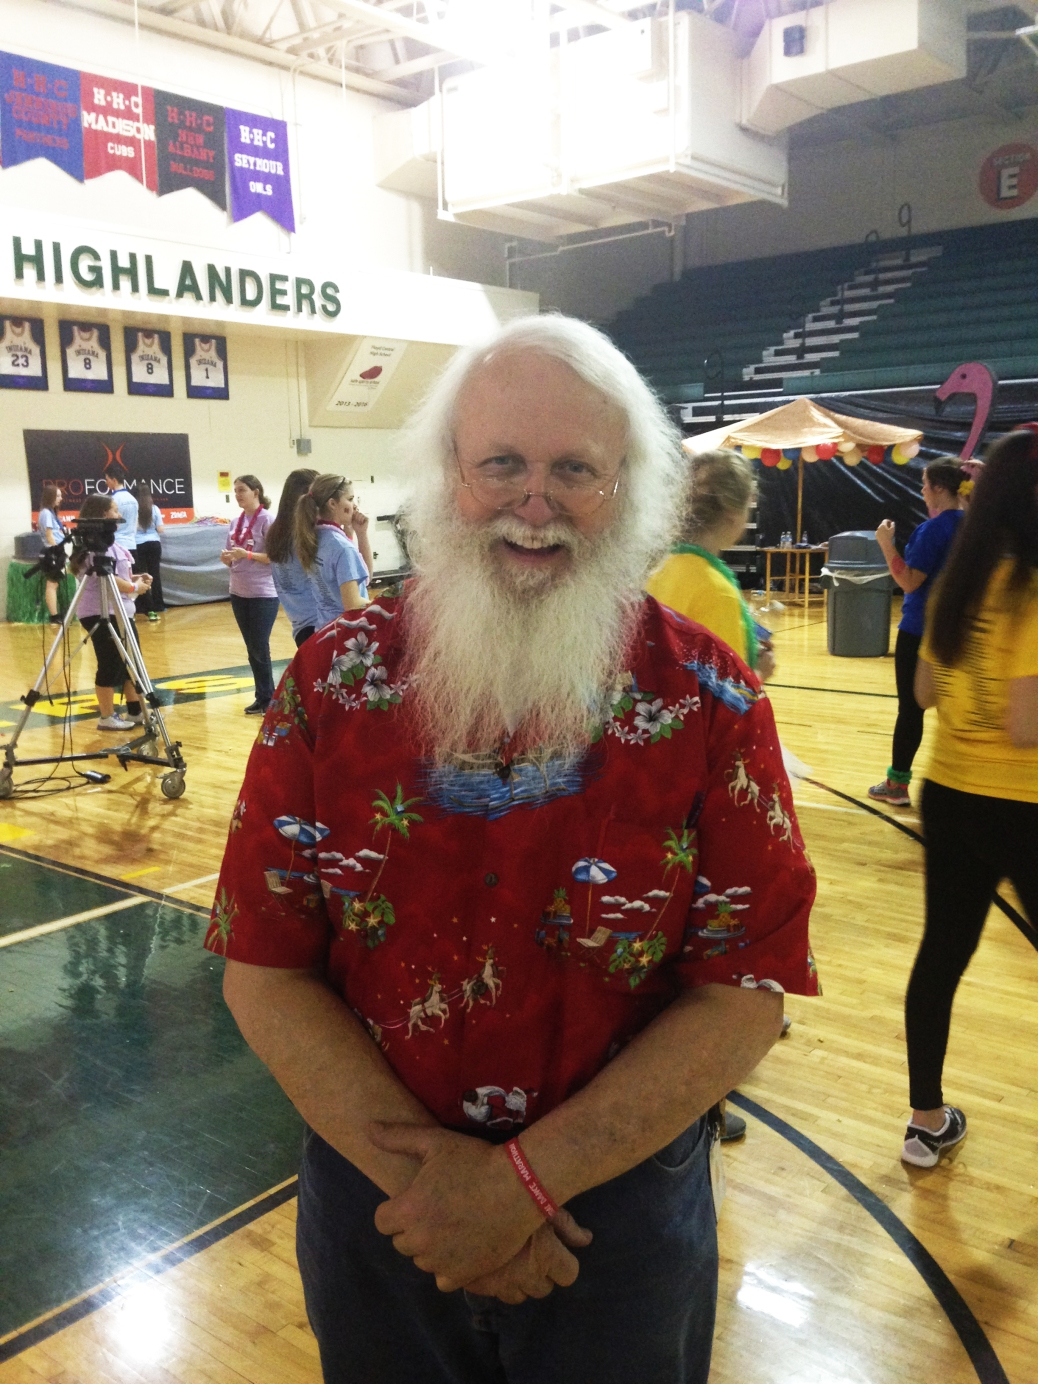 Career info teacher Delbert Hillegas roams the gym after his magic show during Dance Marathon. Photo by Garland Noel.